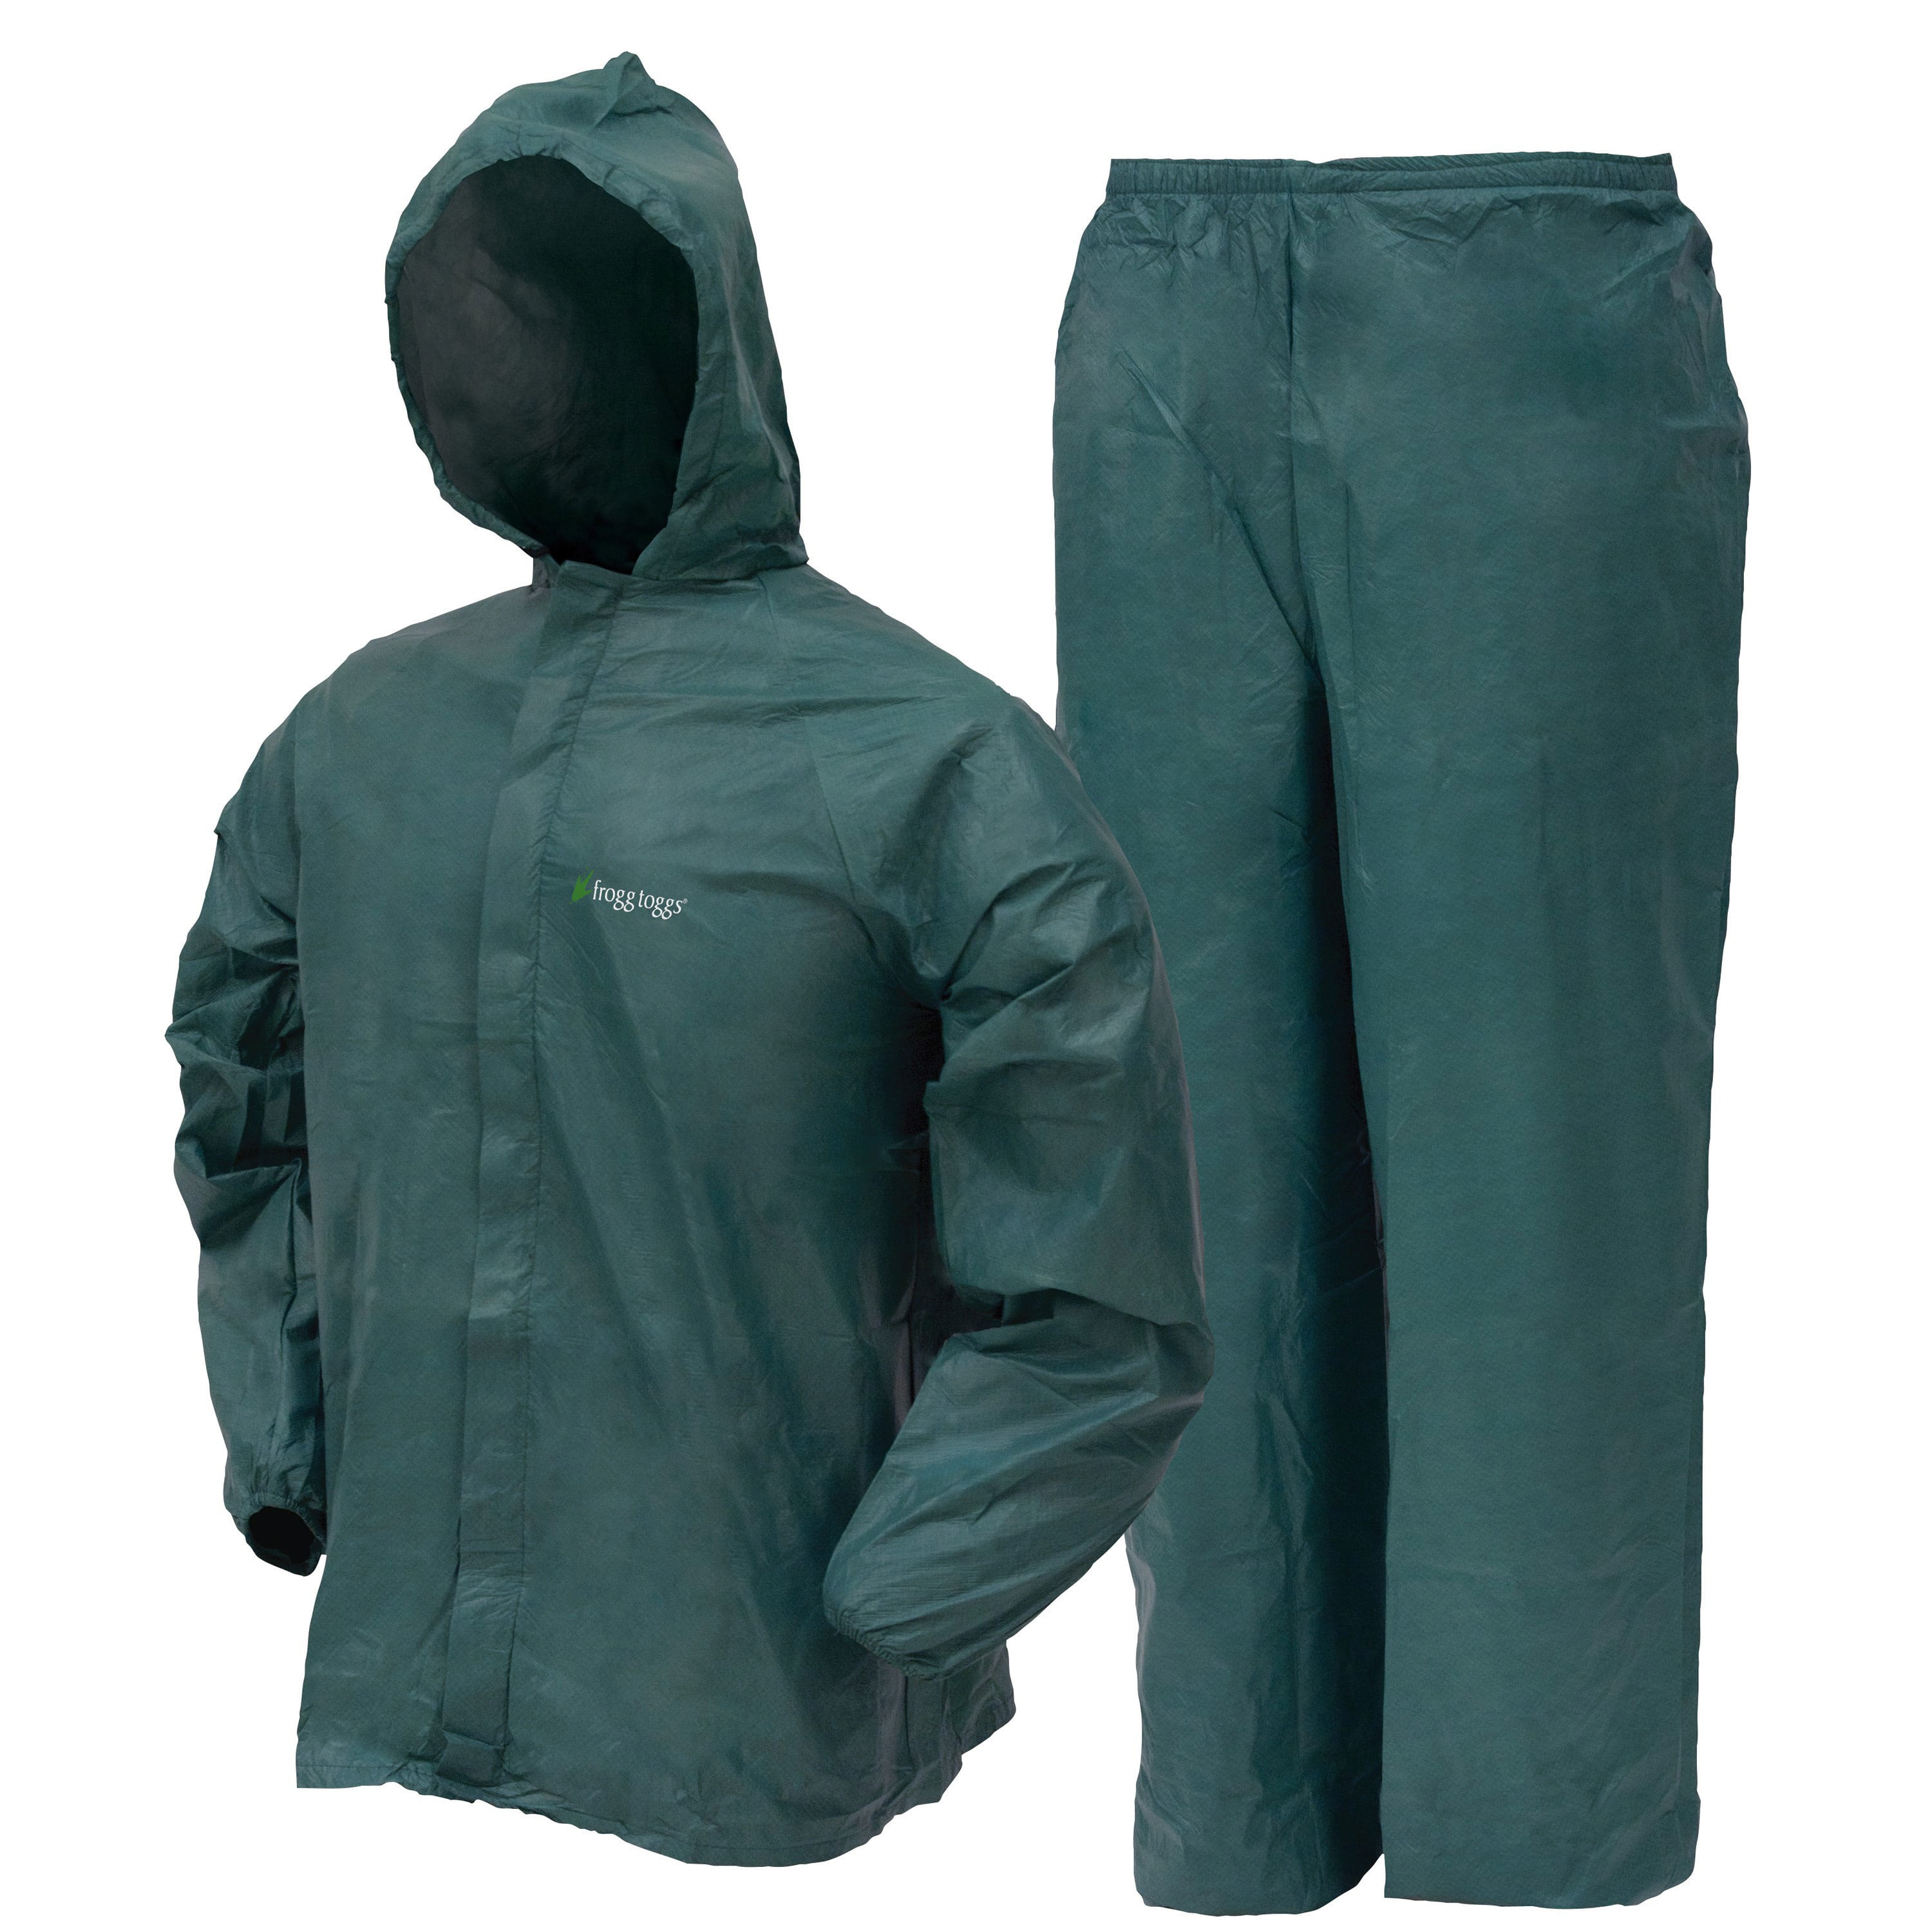 Ultra-Lite2 Rain Suit | Green | Size 2XLg by Frogg Toggs